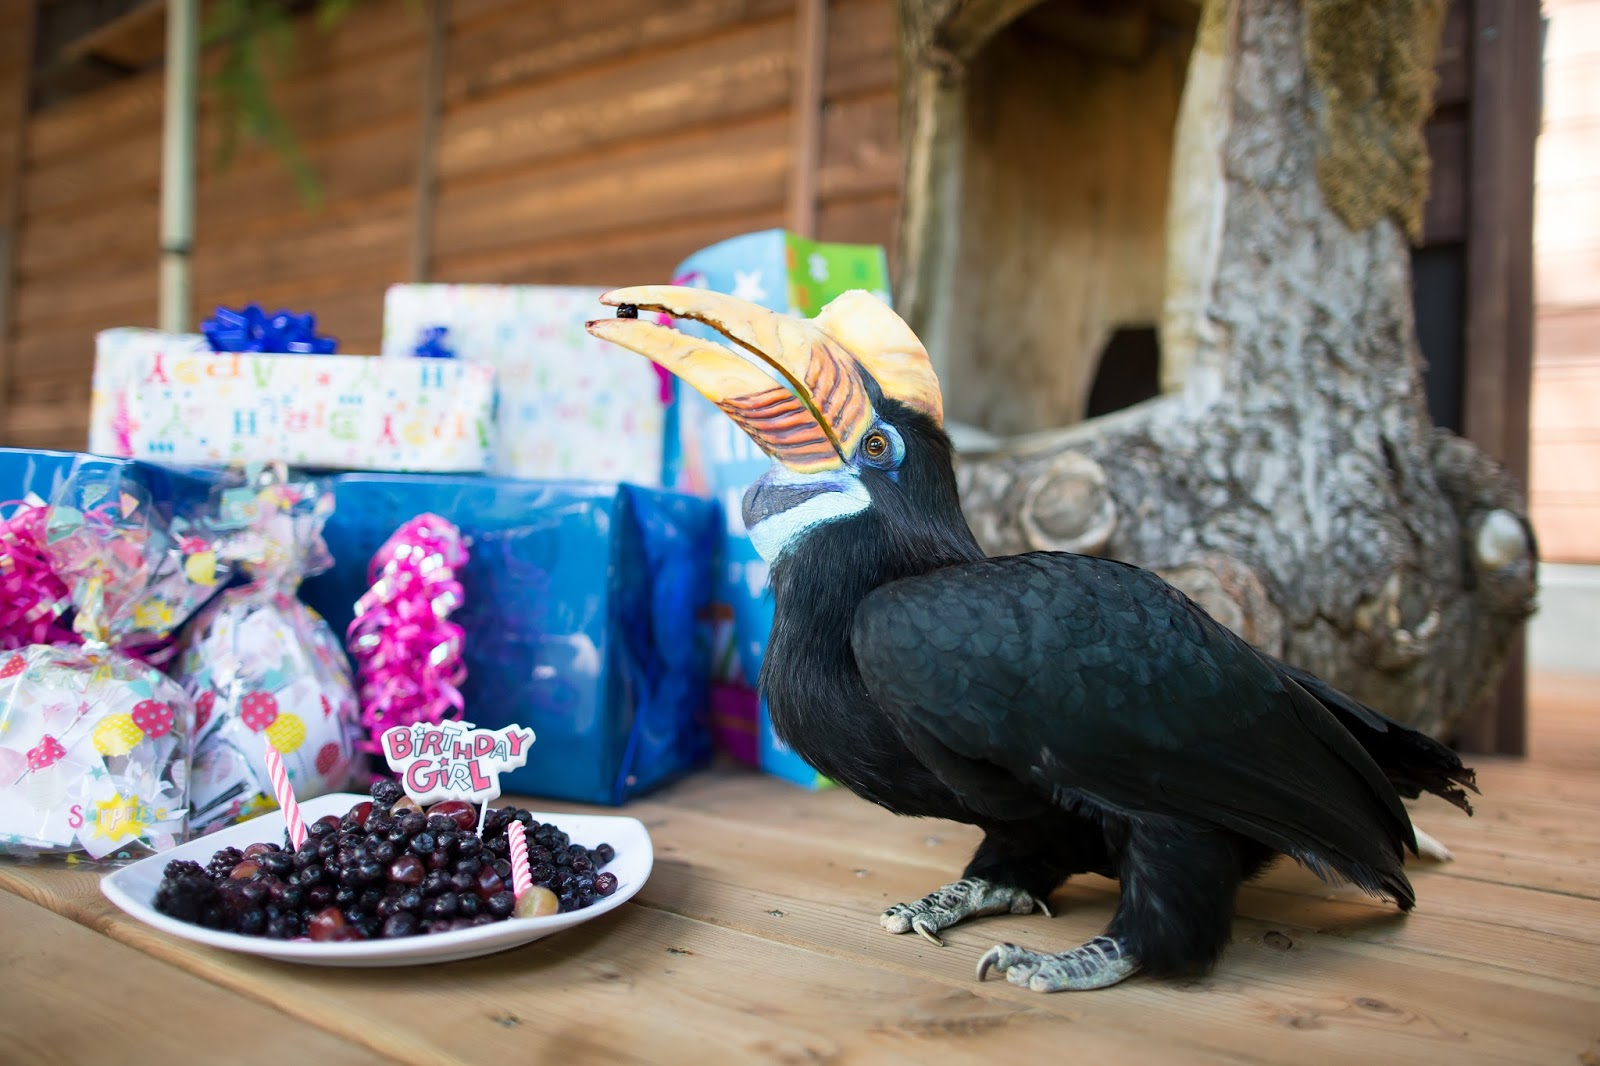 Woodland Park Zoo Blog Happy 20th birthday to hornbill Blueberry